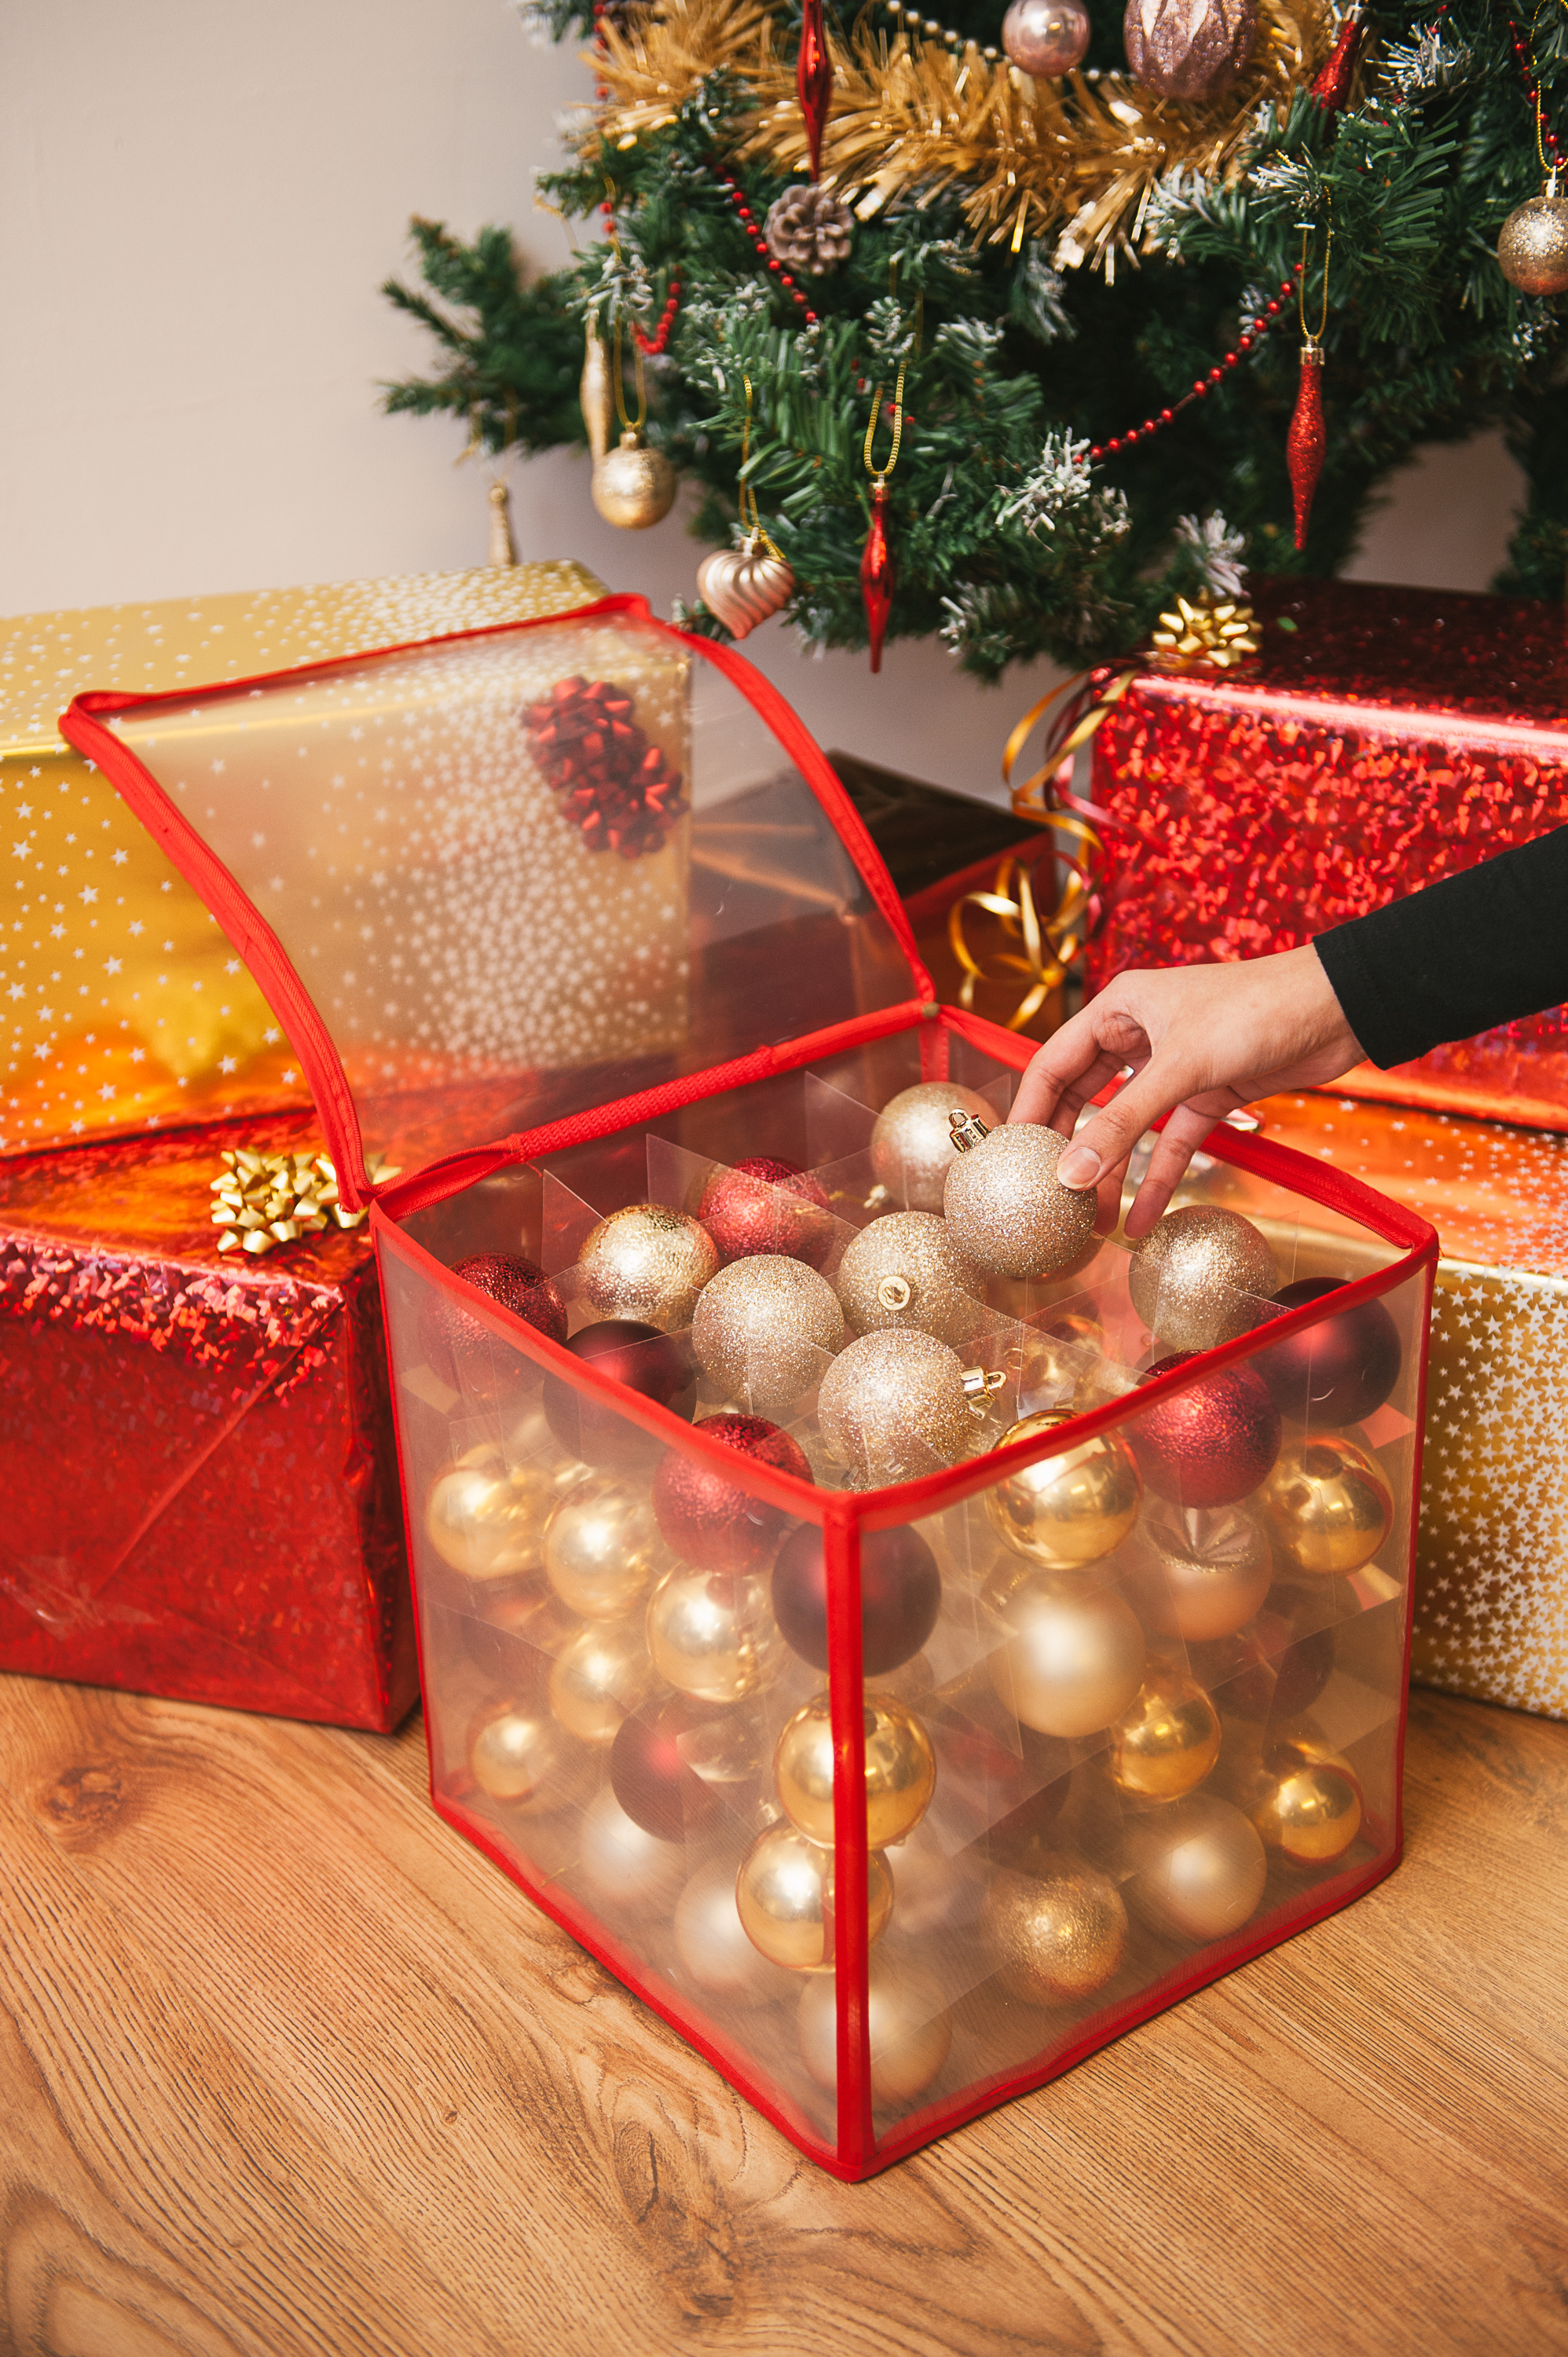 Christmas Tree 64 Bauble Decorations Holder Large Plastic Storage